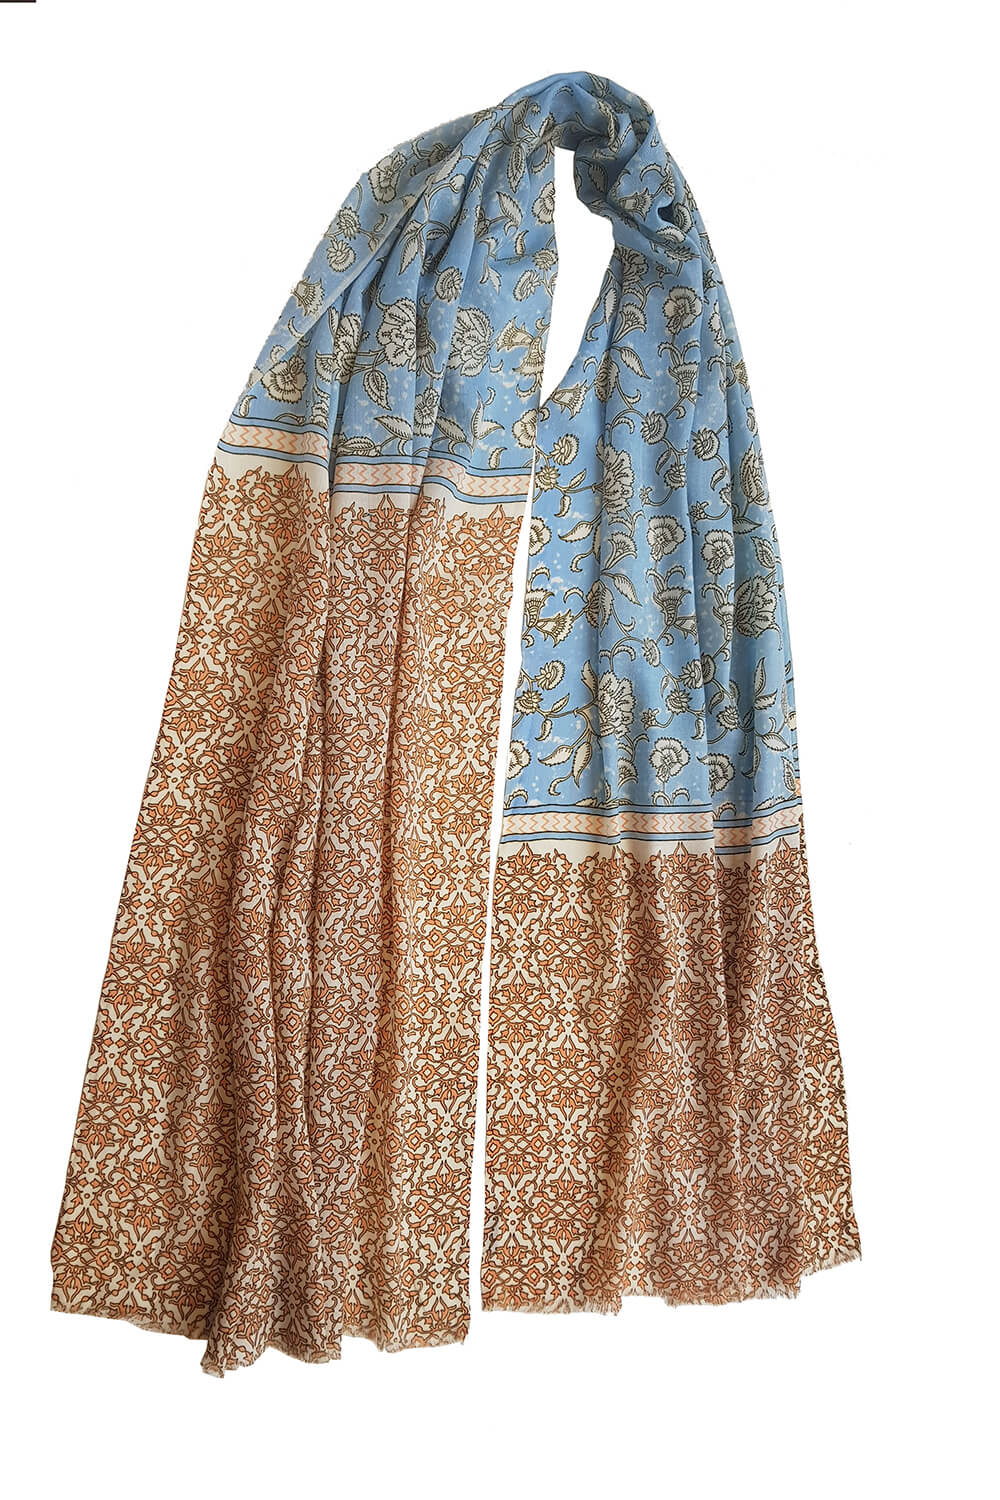 Pashmina YAZD with a floral print in orange and baby blue